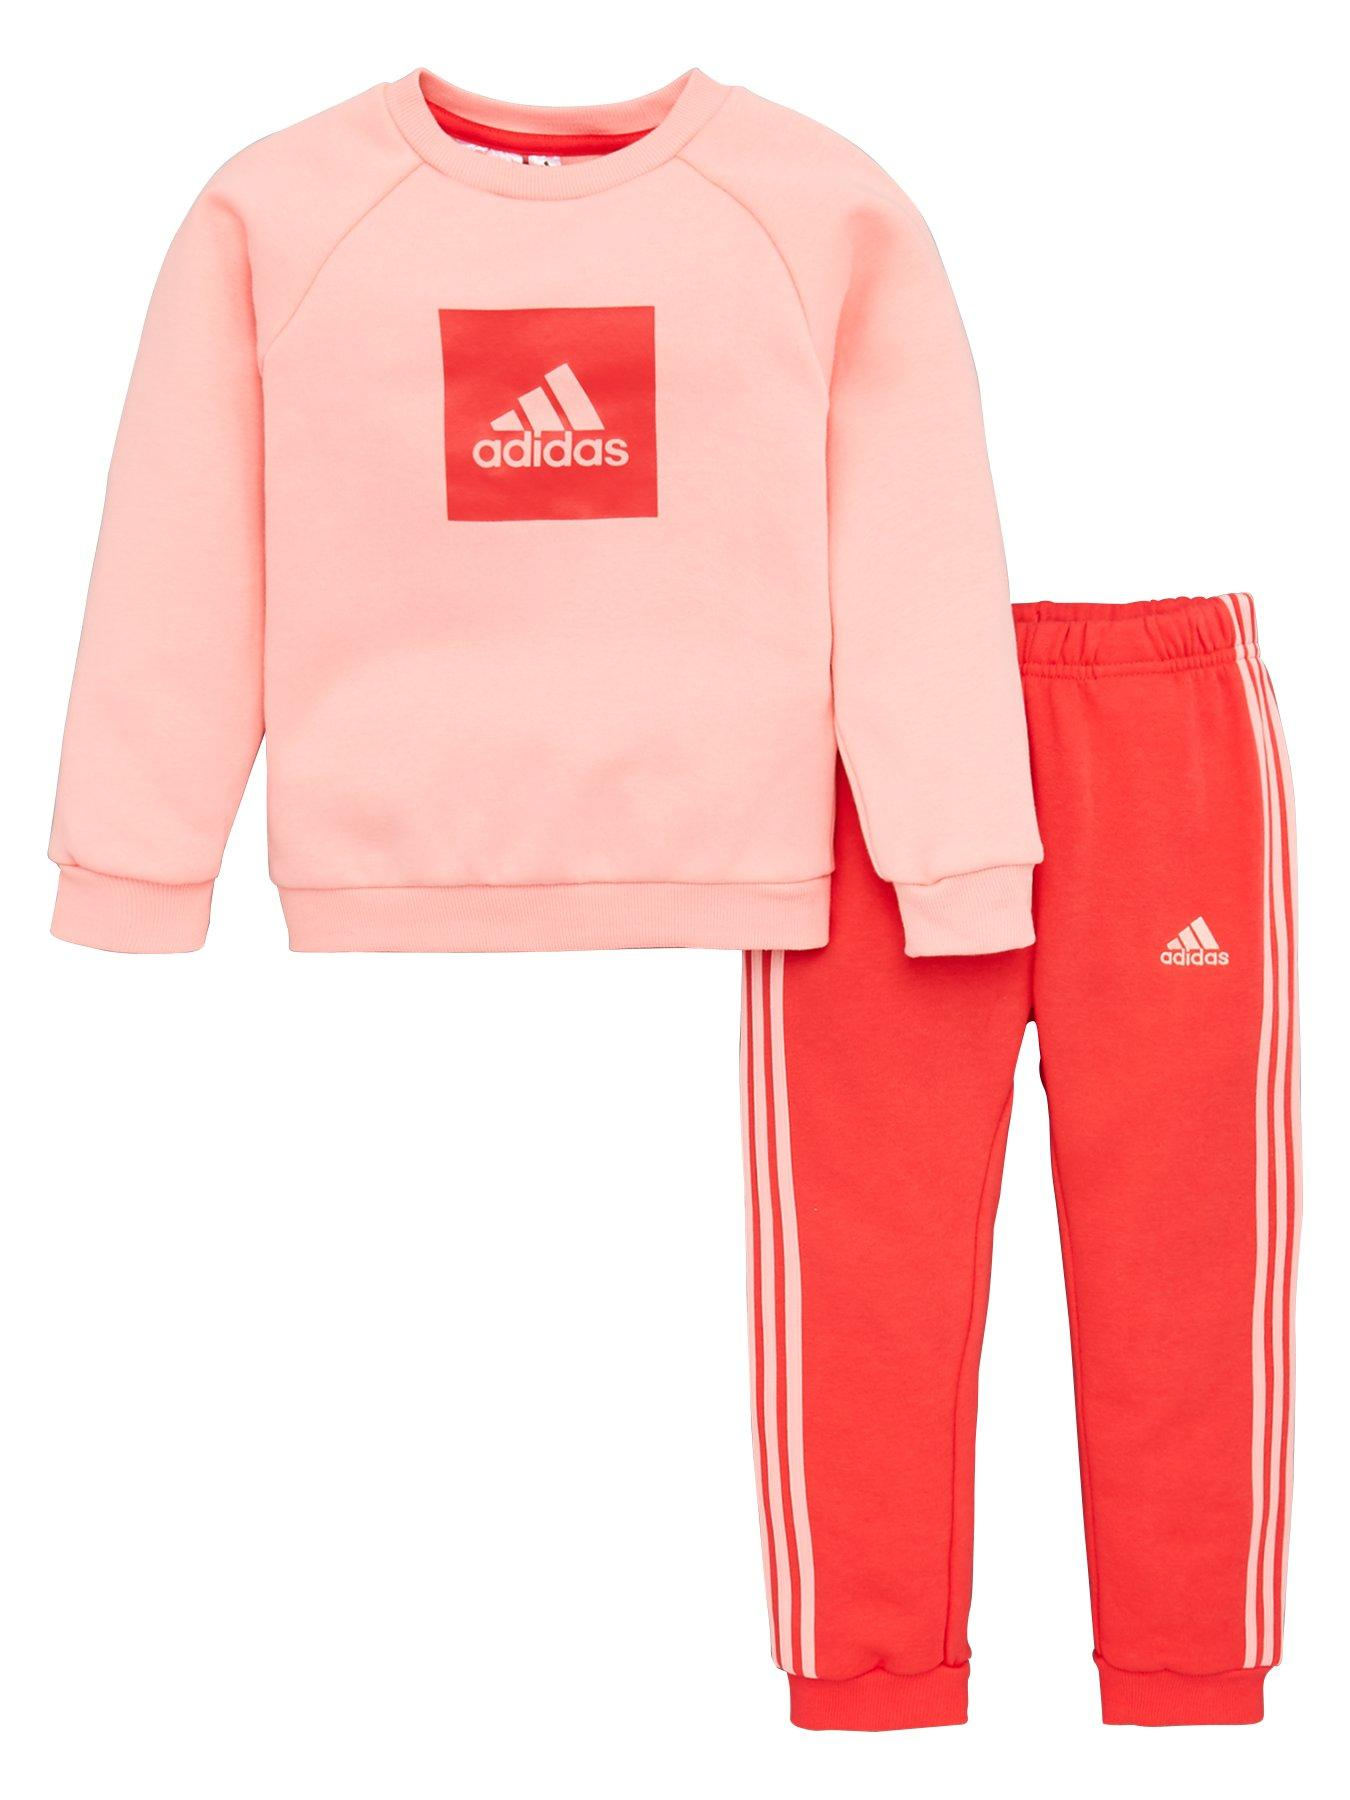 Girls adidas Infant Girls Shiny Hoody Tracksuit in Pink 1-2